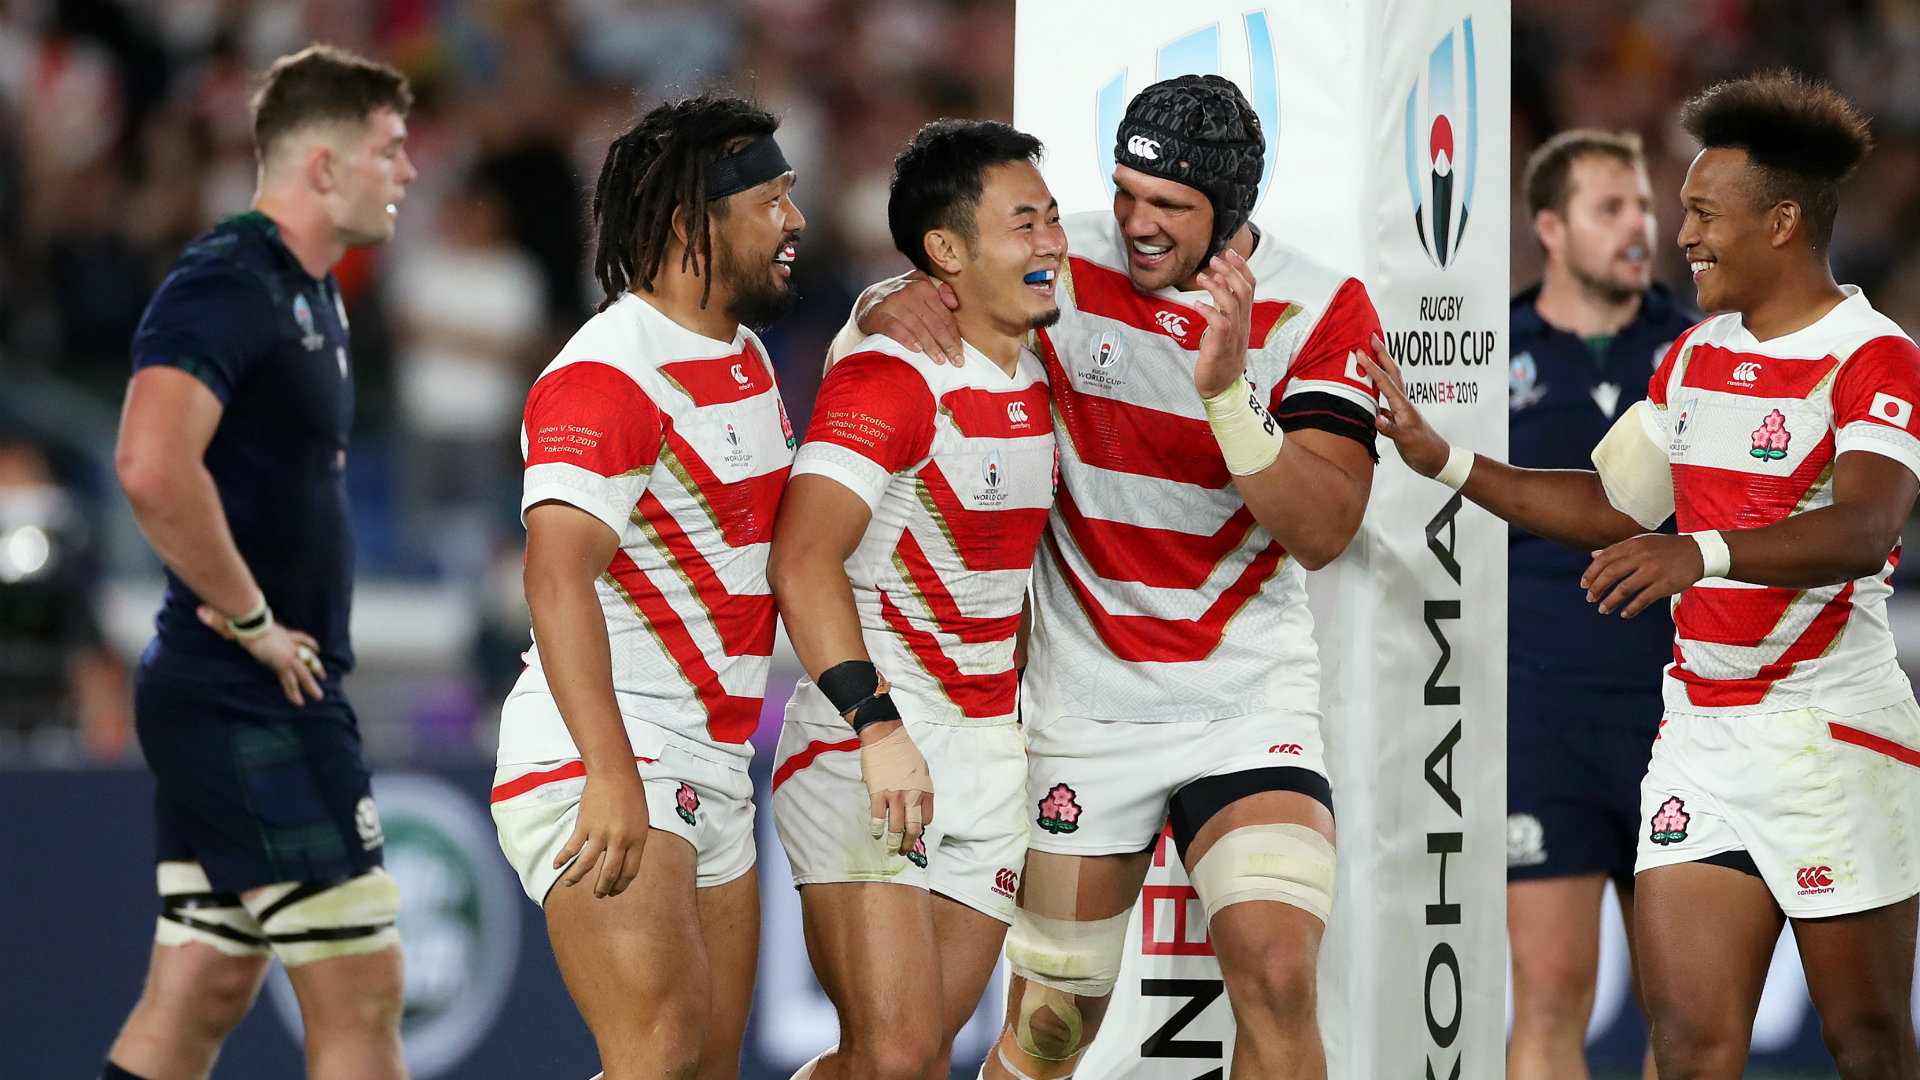 Rugby World Cup 2019: Japan 28-21 Scotland